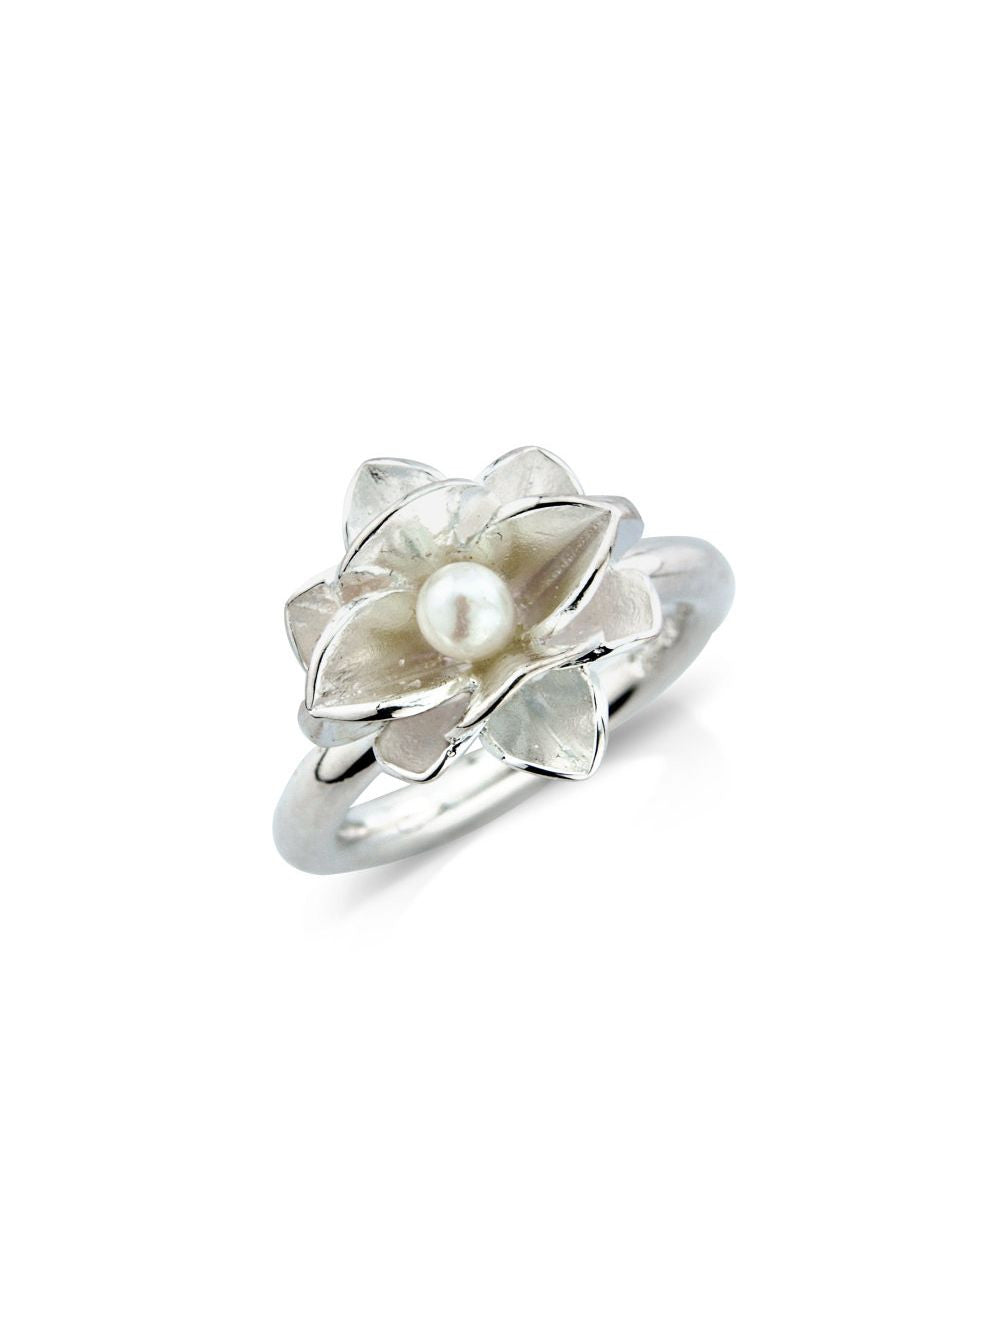 Ísold Silver Pearl Ring by Aurum - Art Jewellery Store: Song of Jewellery